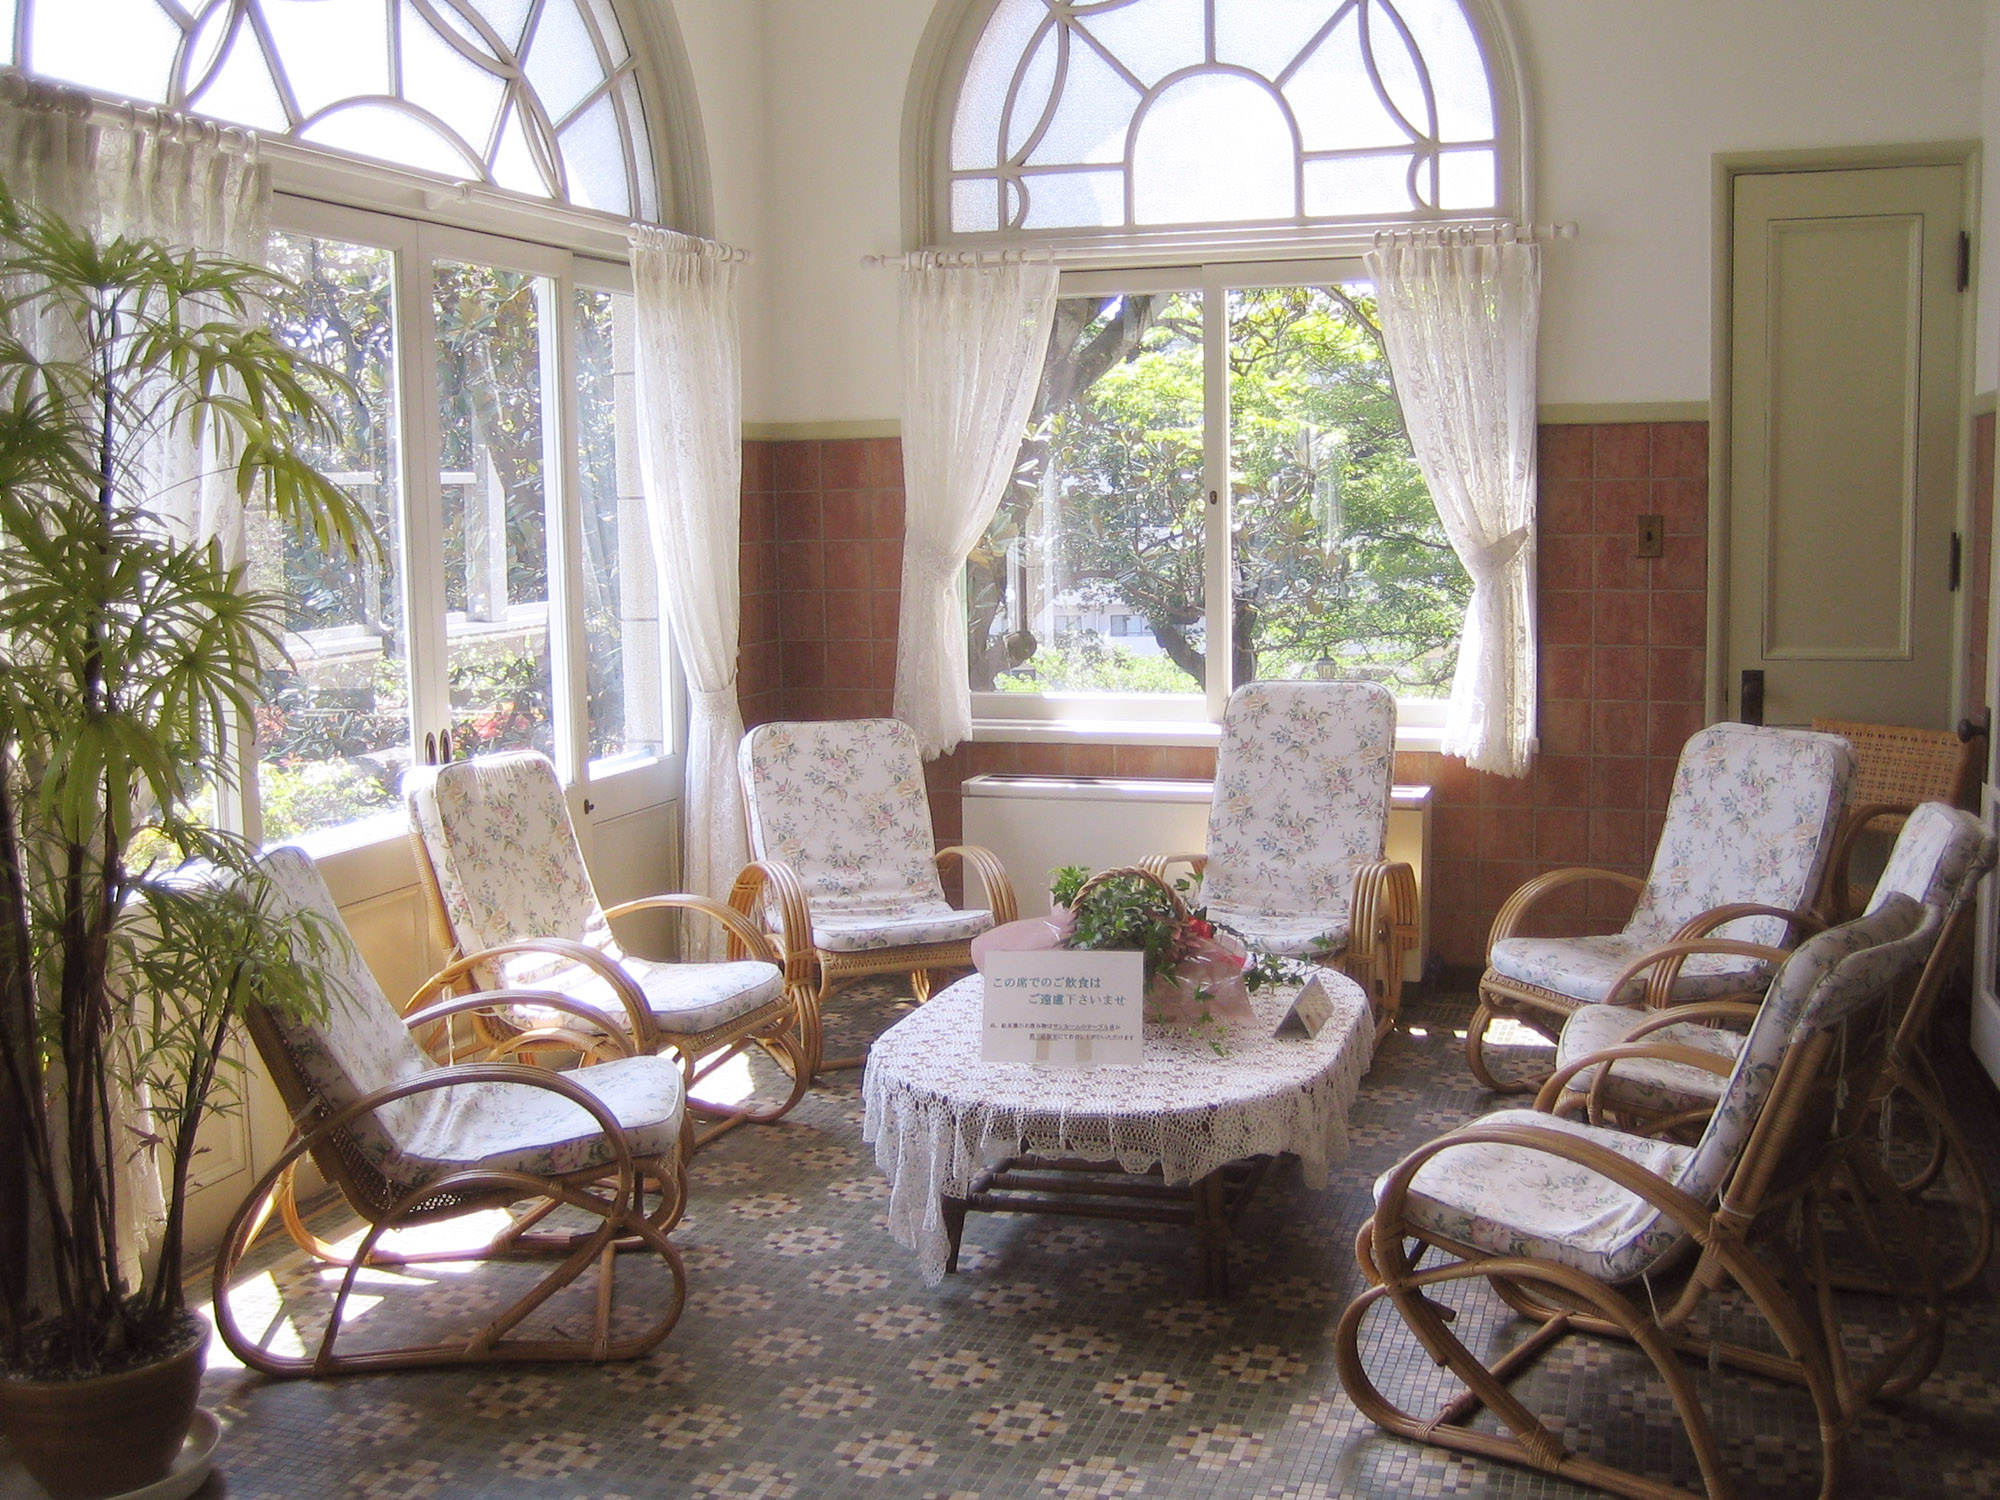 Sunroom wikidwelling Florida sunroom ideas